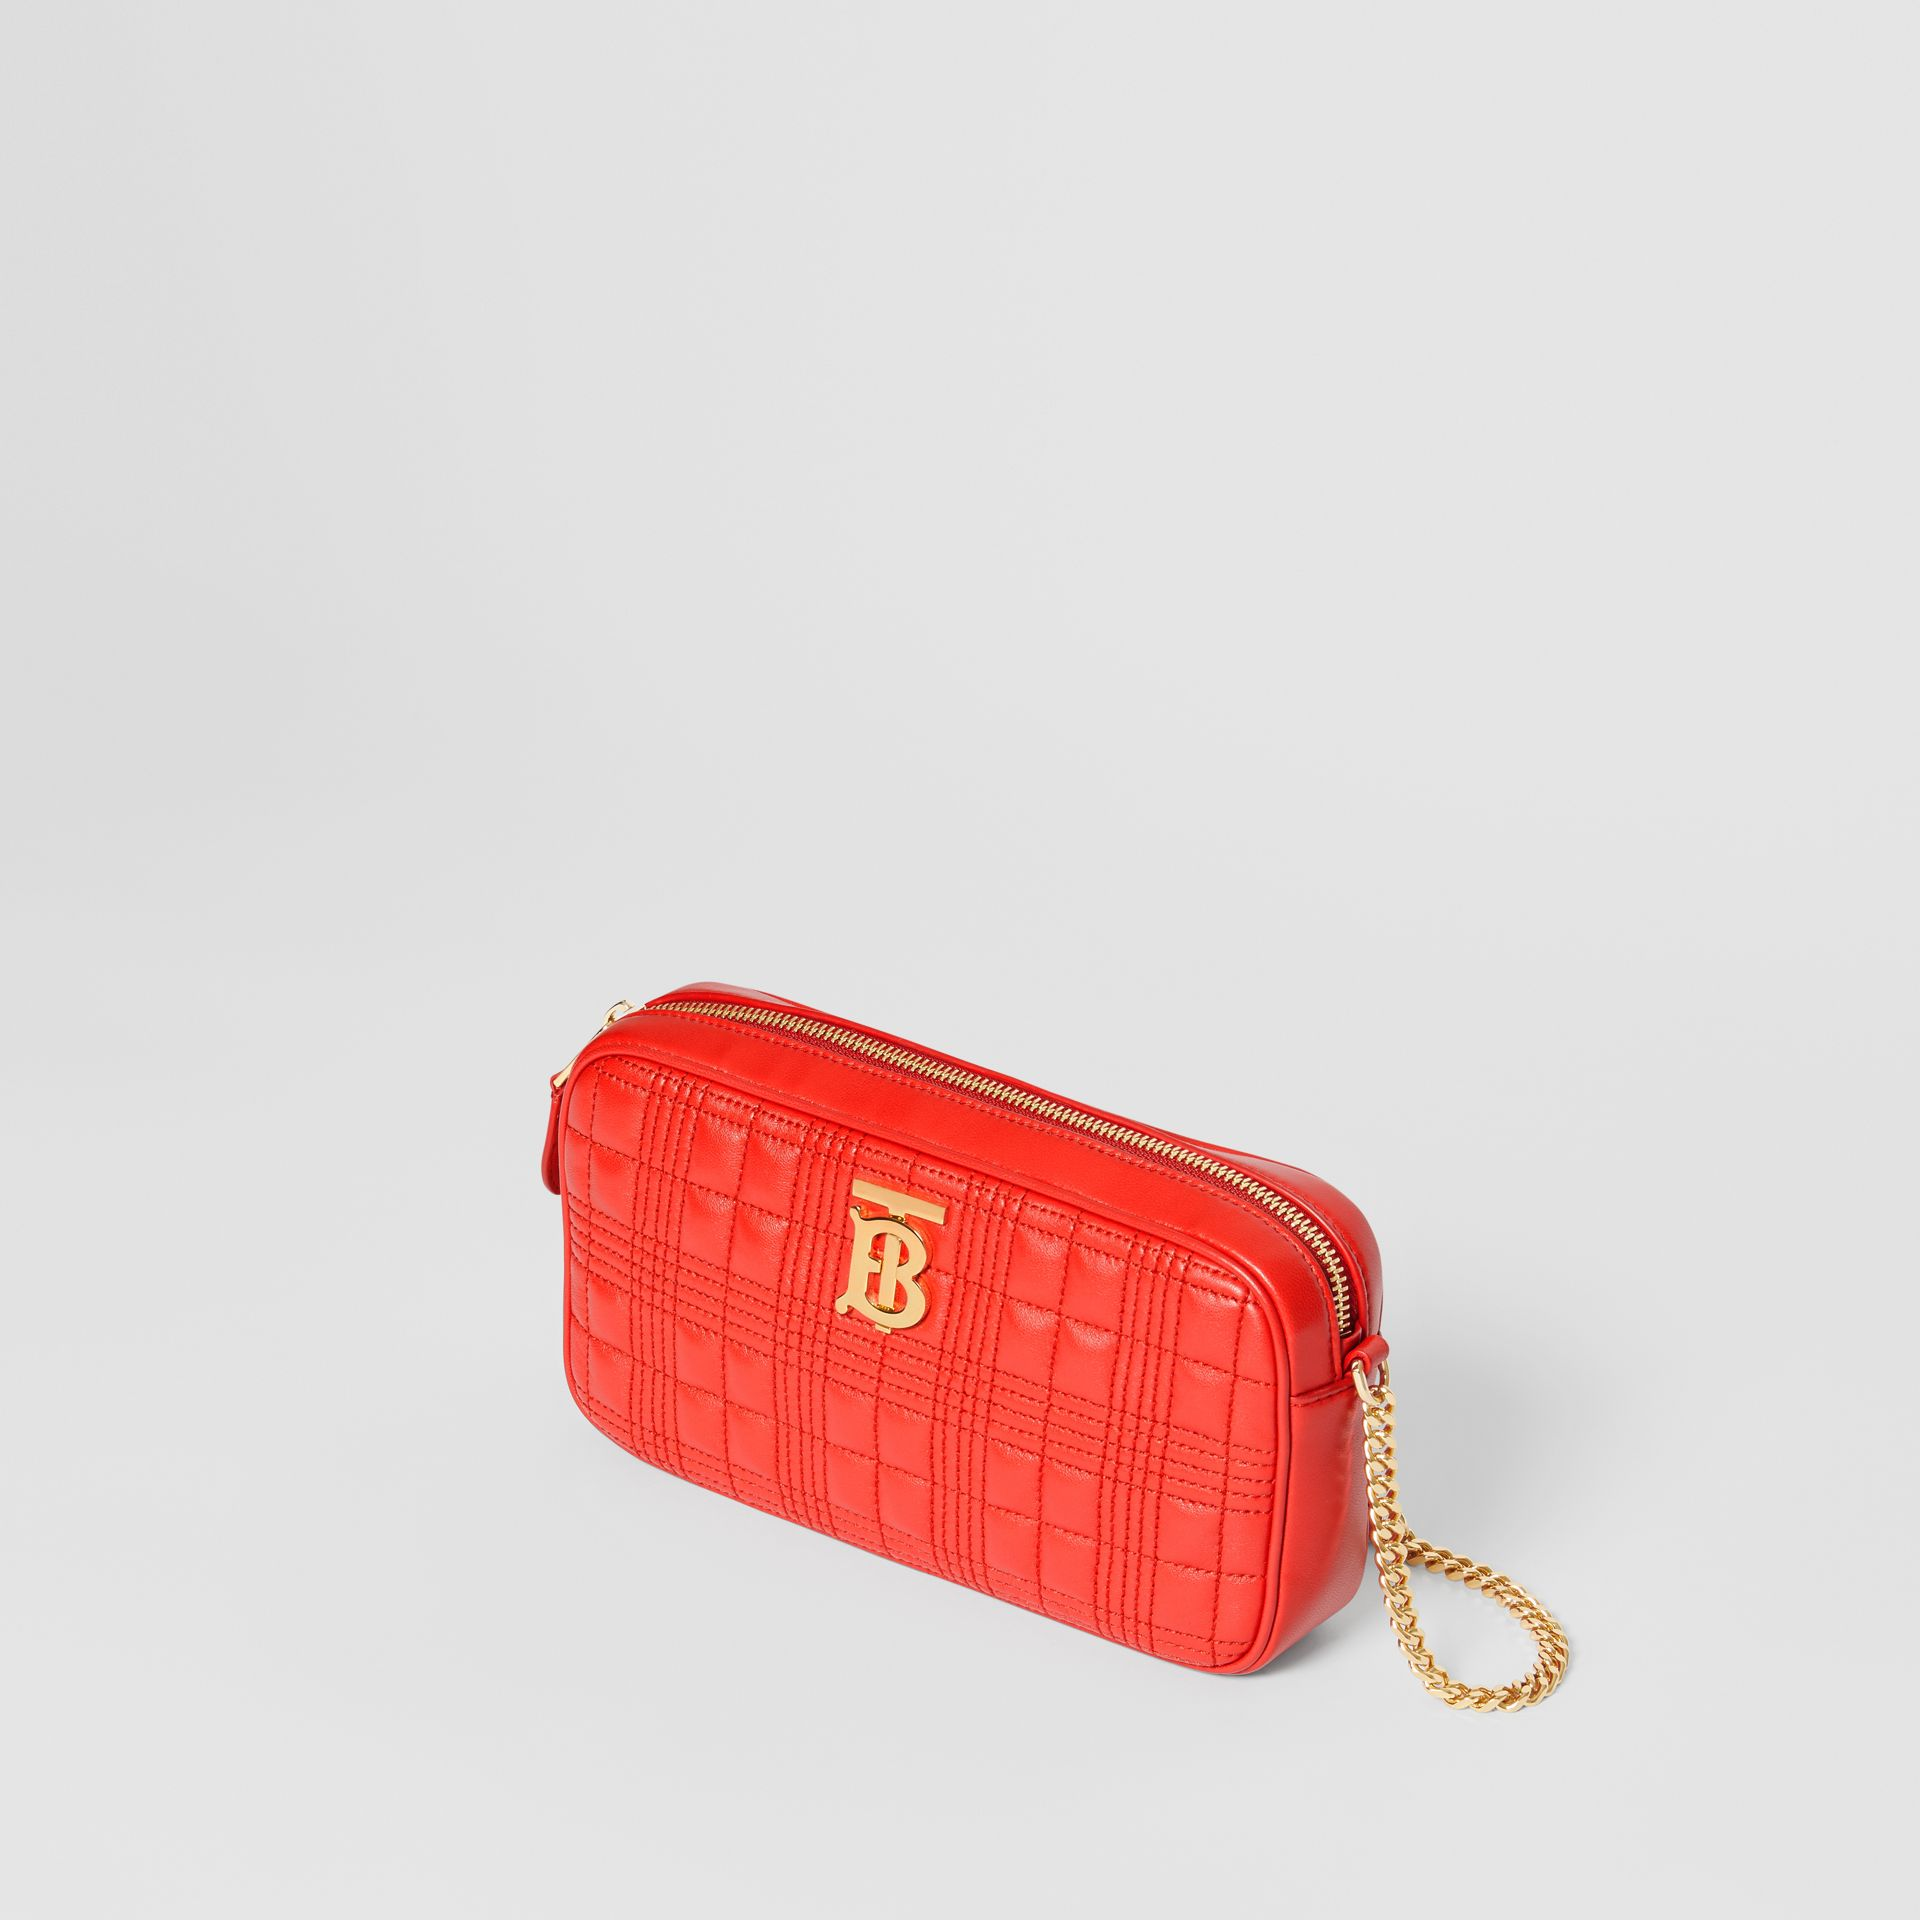 Quilted Check Lambskin Camera Bag in Bright Red - Women | Burberry Australia - gallery image 2